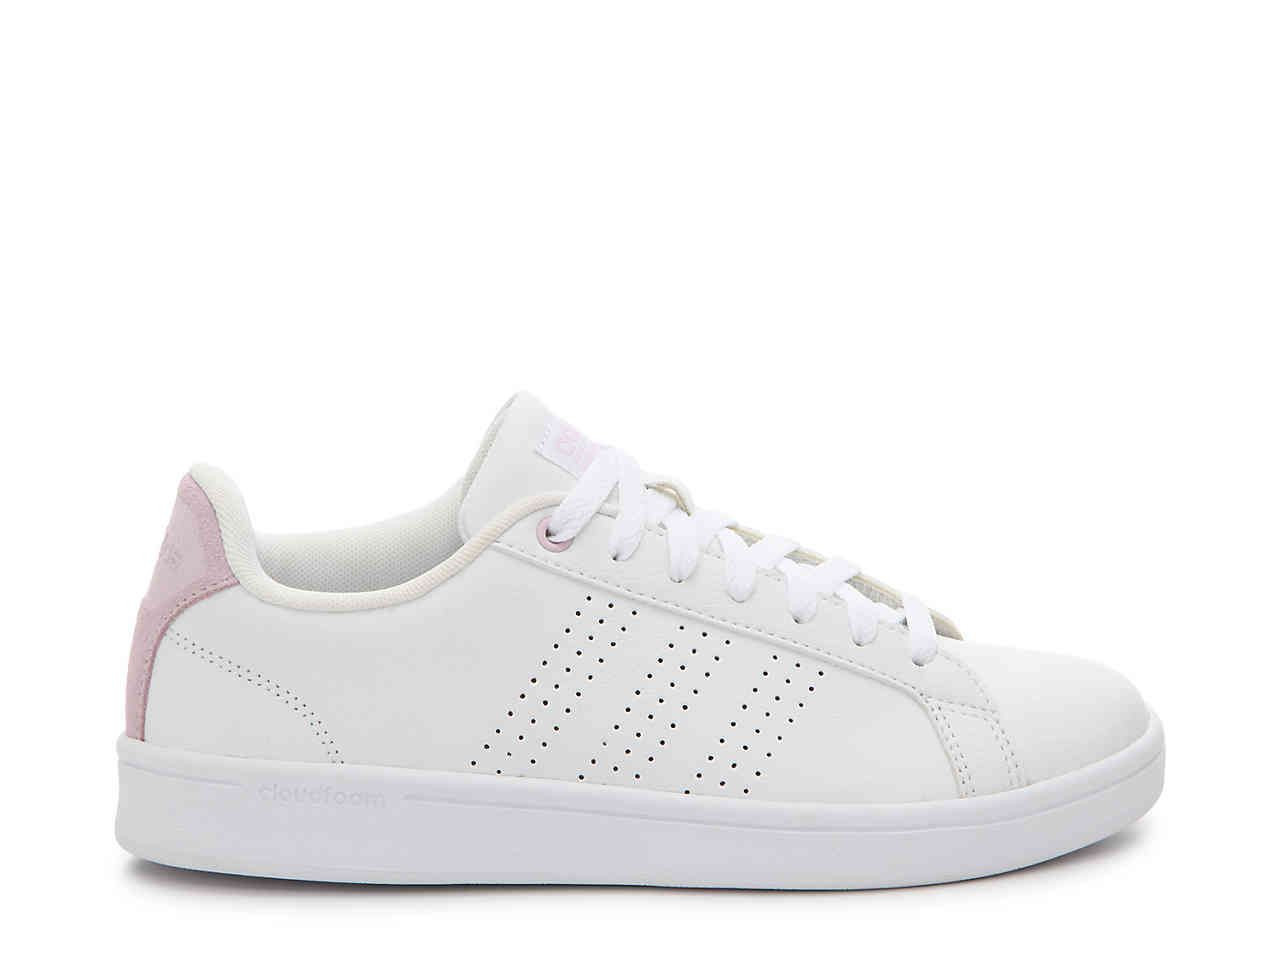 factory authentic be755 73048 adidas Advantage Sneaker - Women s Women s Shoes   DSW Adidas Stan Smith,  Other Accessories,